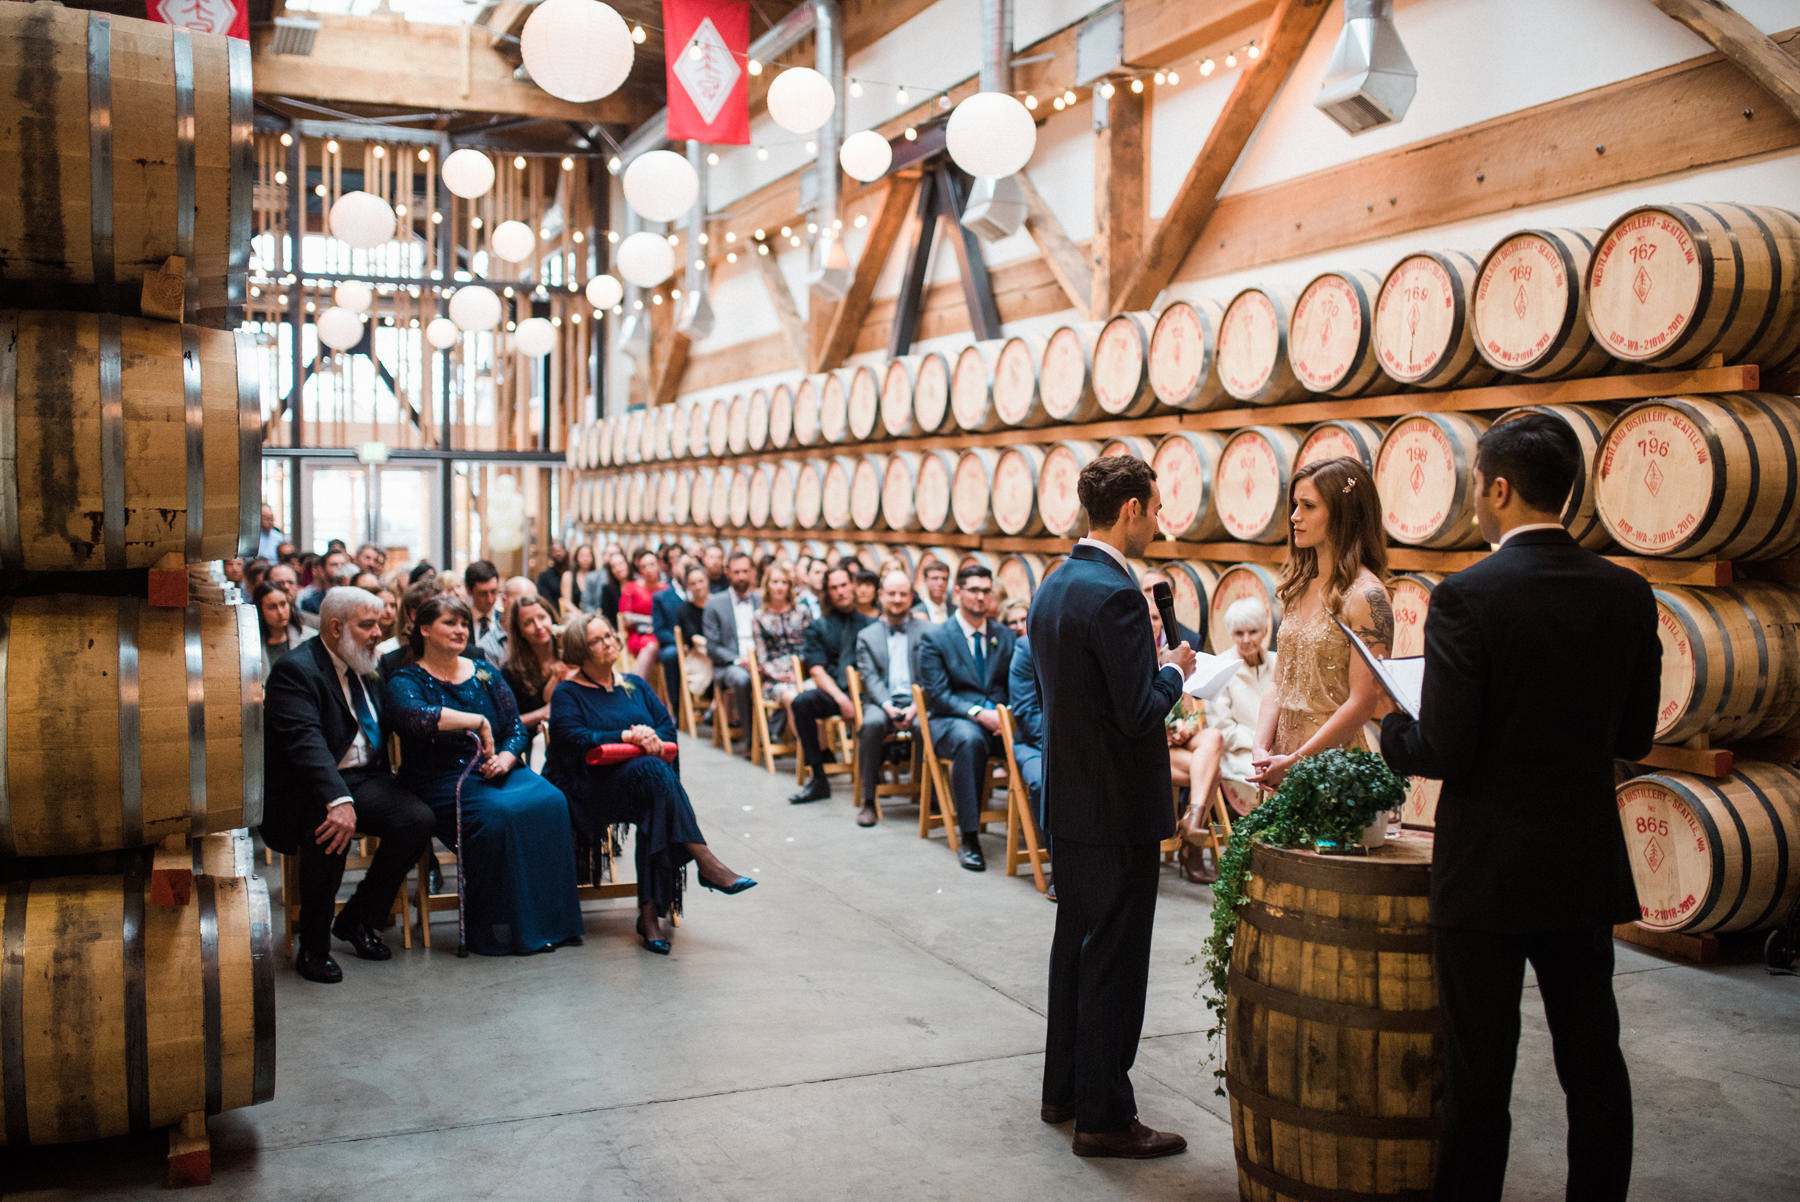 037-wedding-ceremony-among-whiskey-barrels-at-westland-distillery.jpg